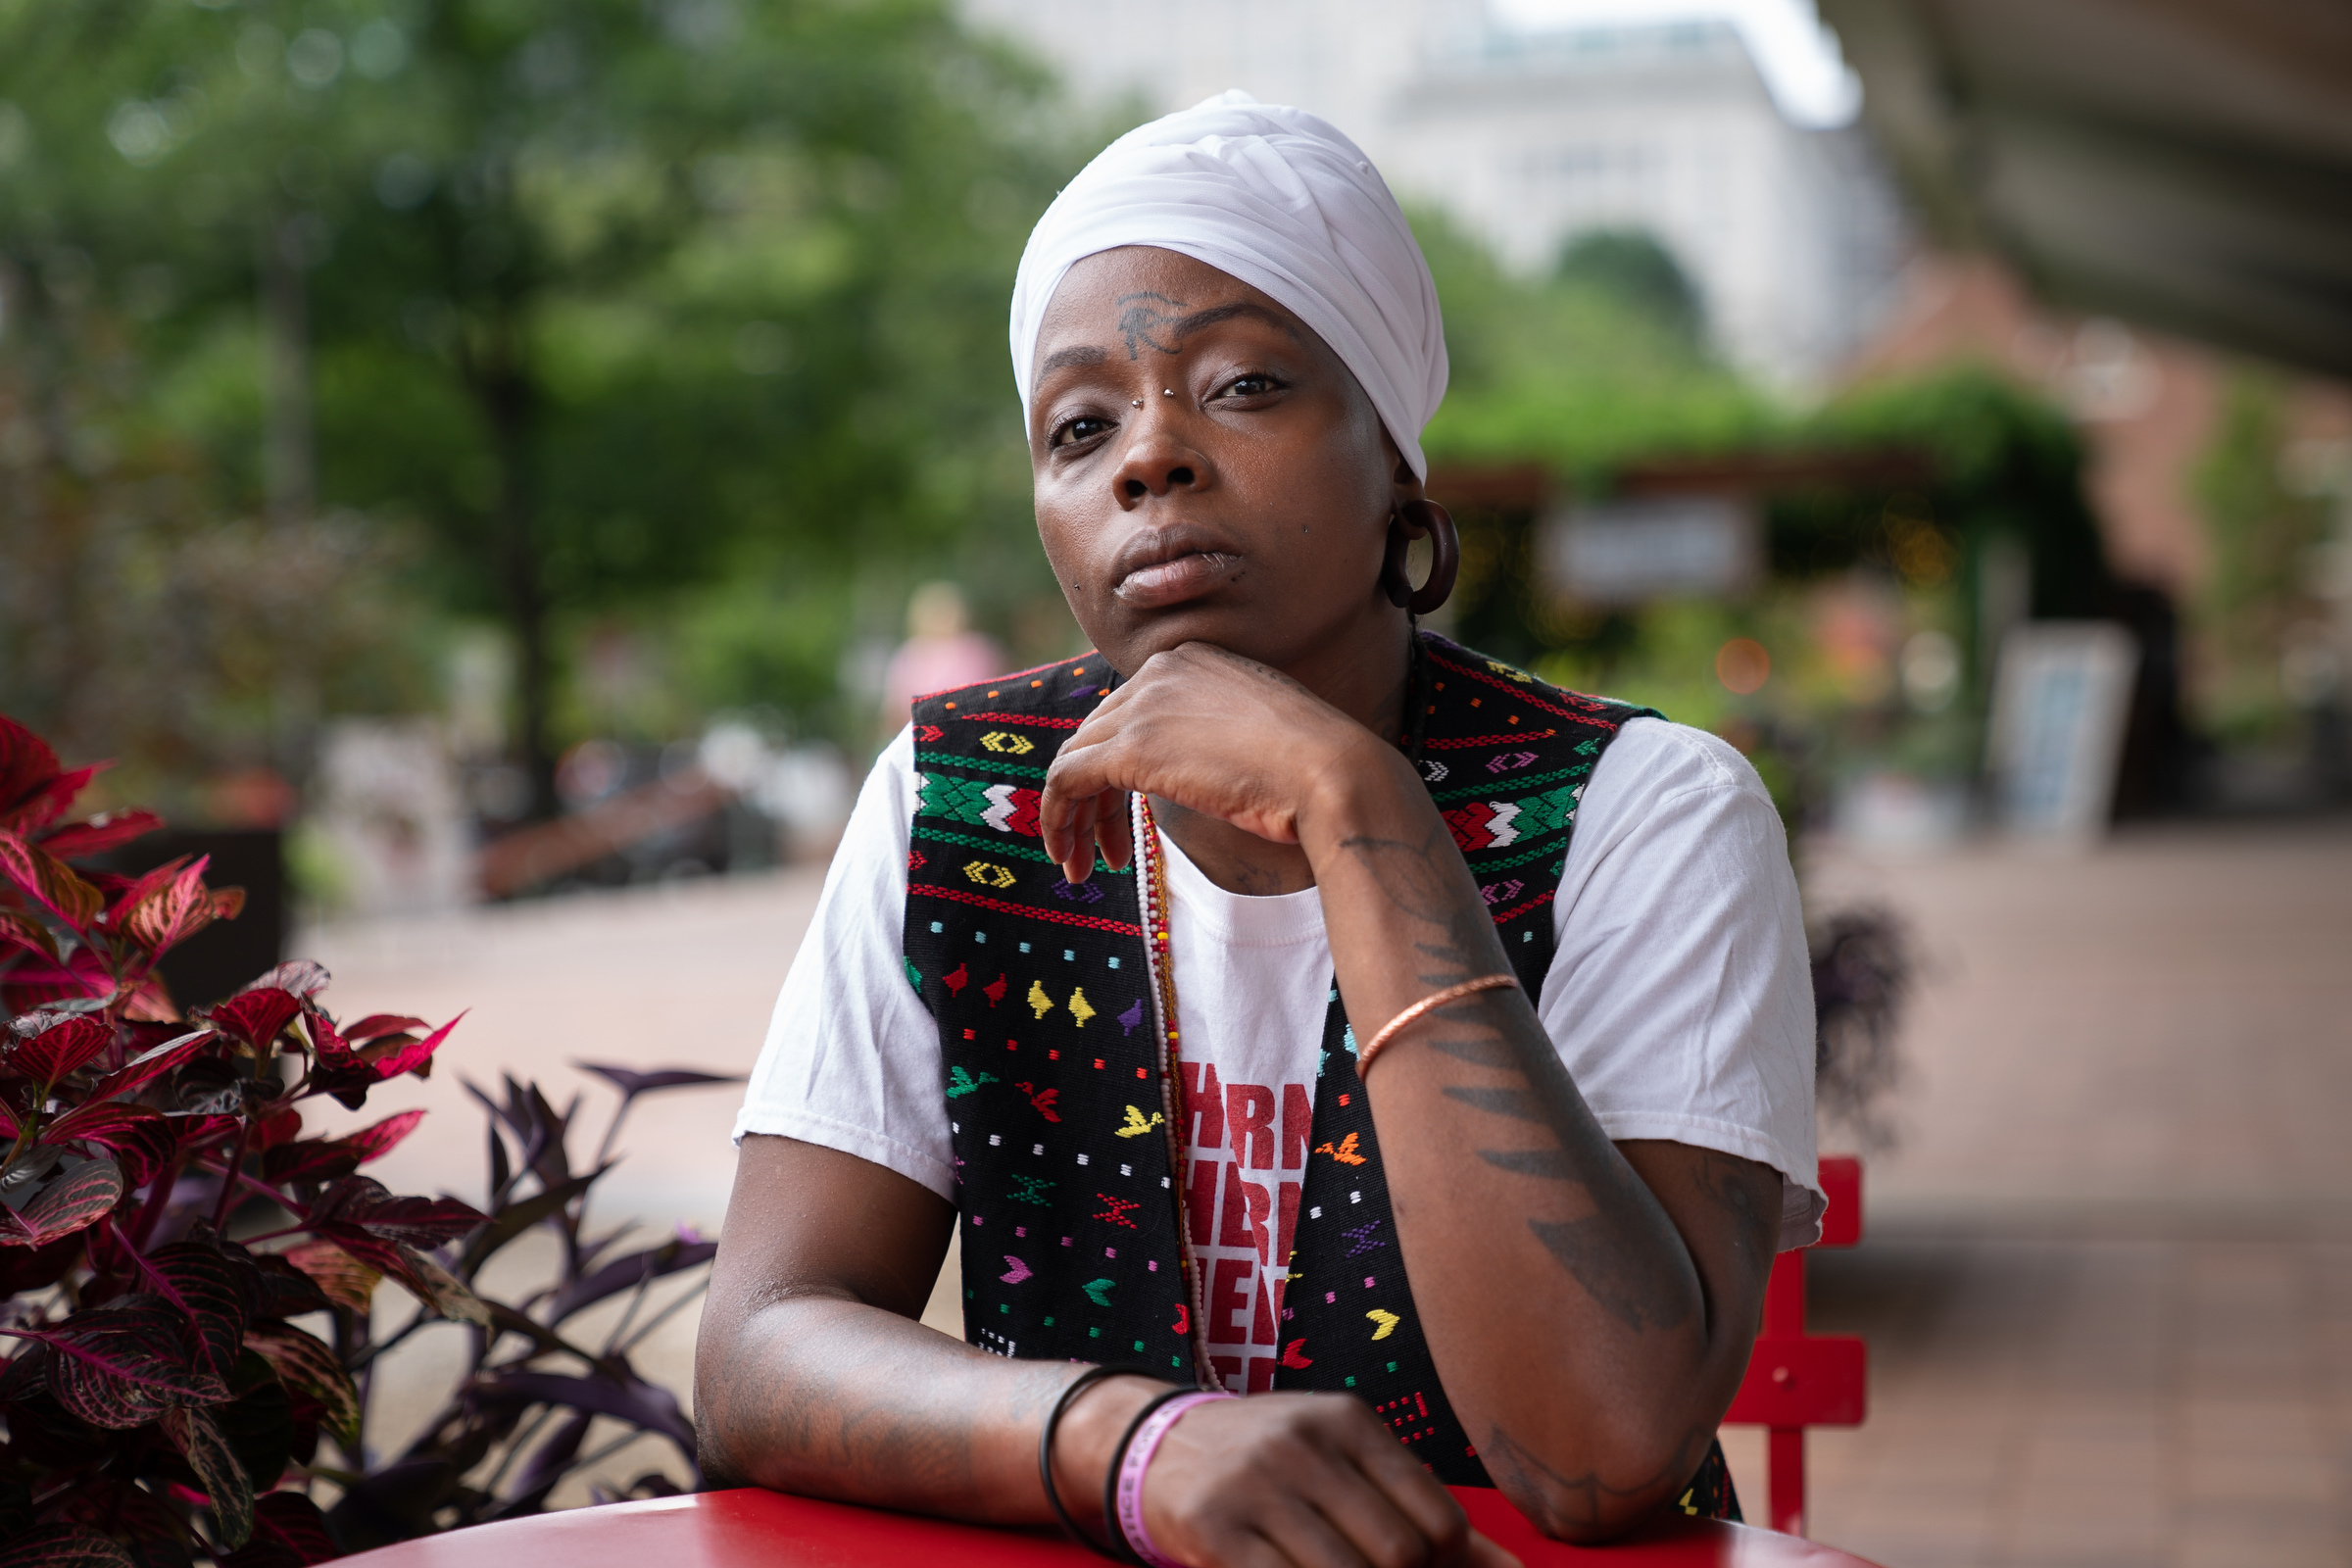 Melanie Carter will debut her show, Memoirs of an Activist on Aug. 25 at the African-American museum, she is shown here in Center City, Philadelphia, Tuesday, August 21, 2018. The one-woman show reflects on black womenÕs experiences on subjects ranging from feminism, hip-hop, police brutality, and mass incarceration.